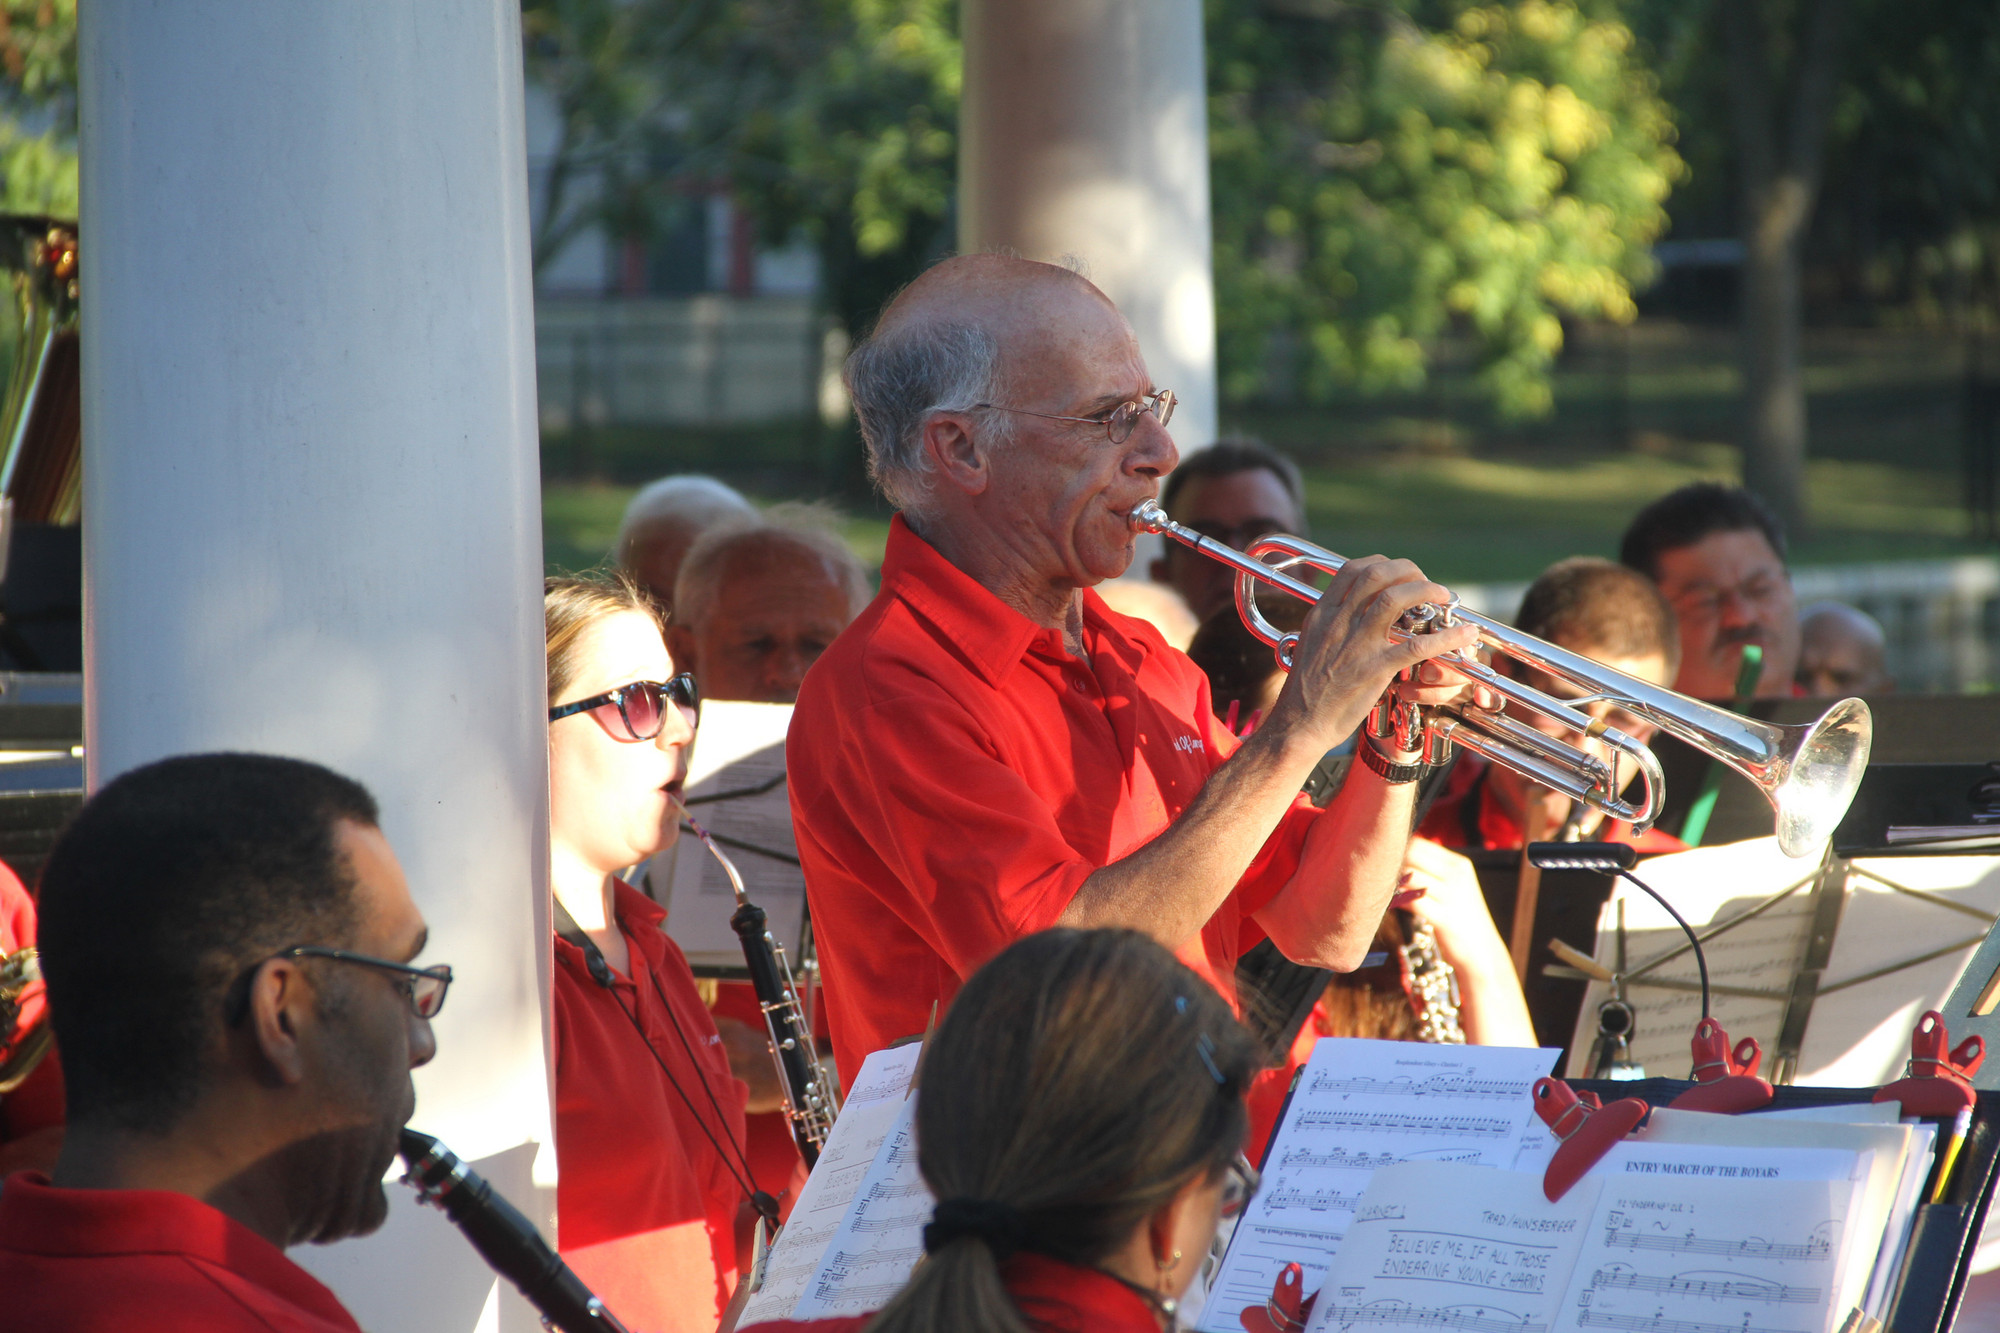 Trumpeter David Kopstein was a featured musician at the concert.